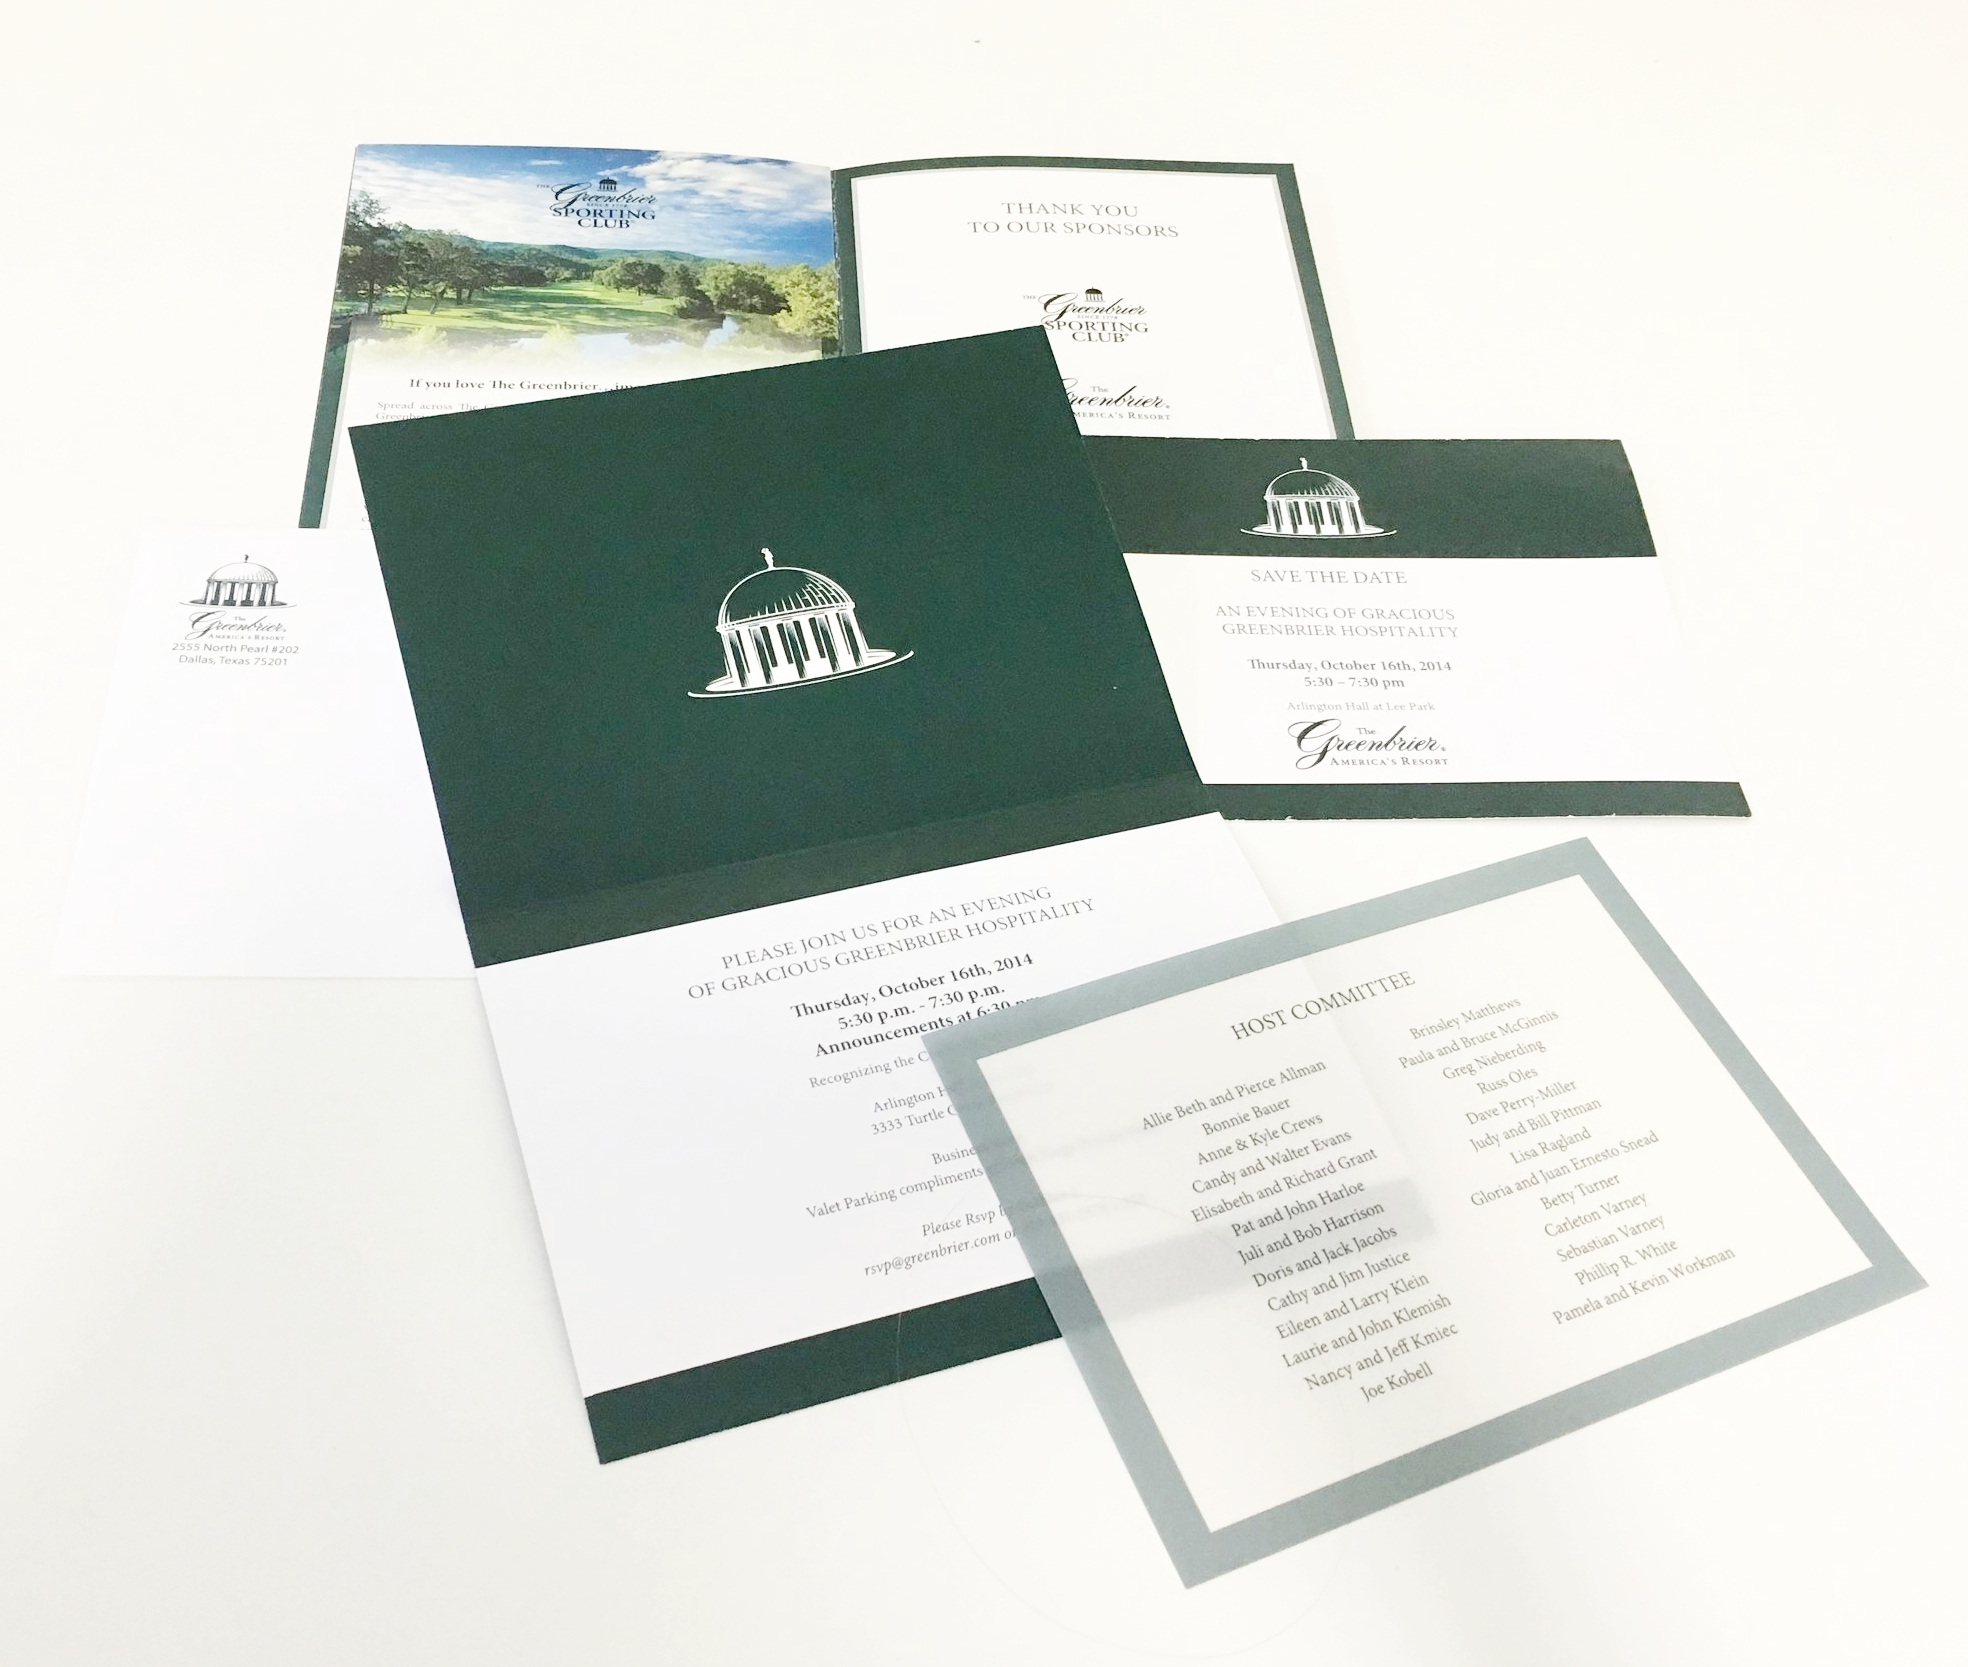 Marketing materials Dala helped create,celebrating the launch of The Greenbrier Sporting Club in West Virginia